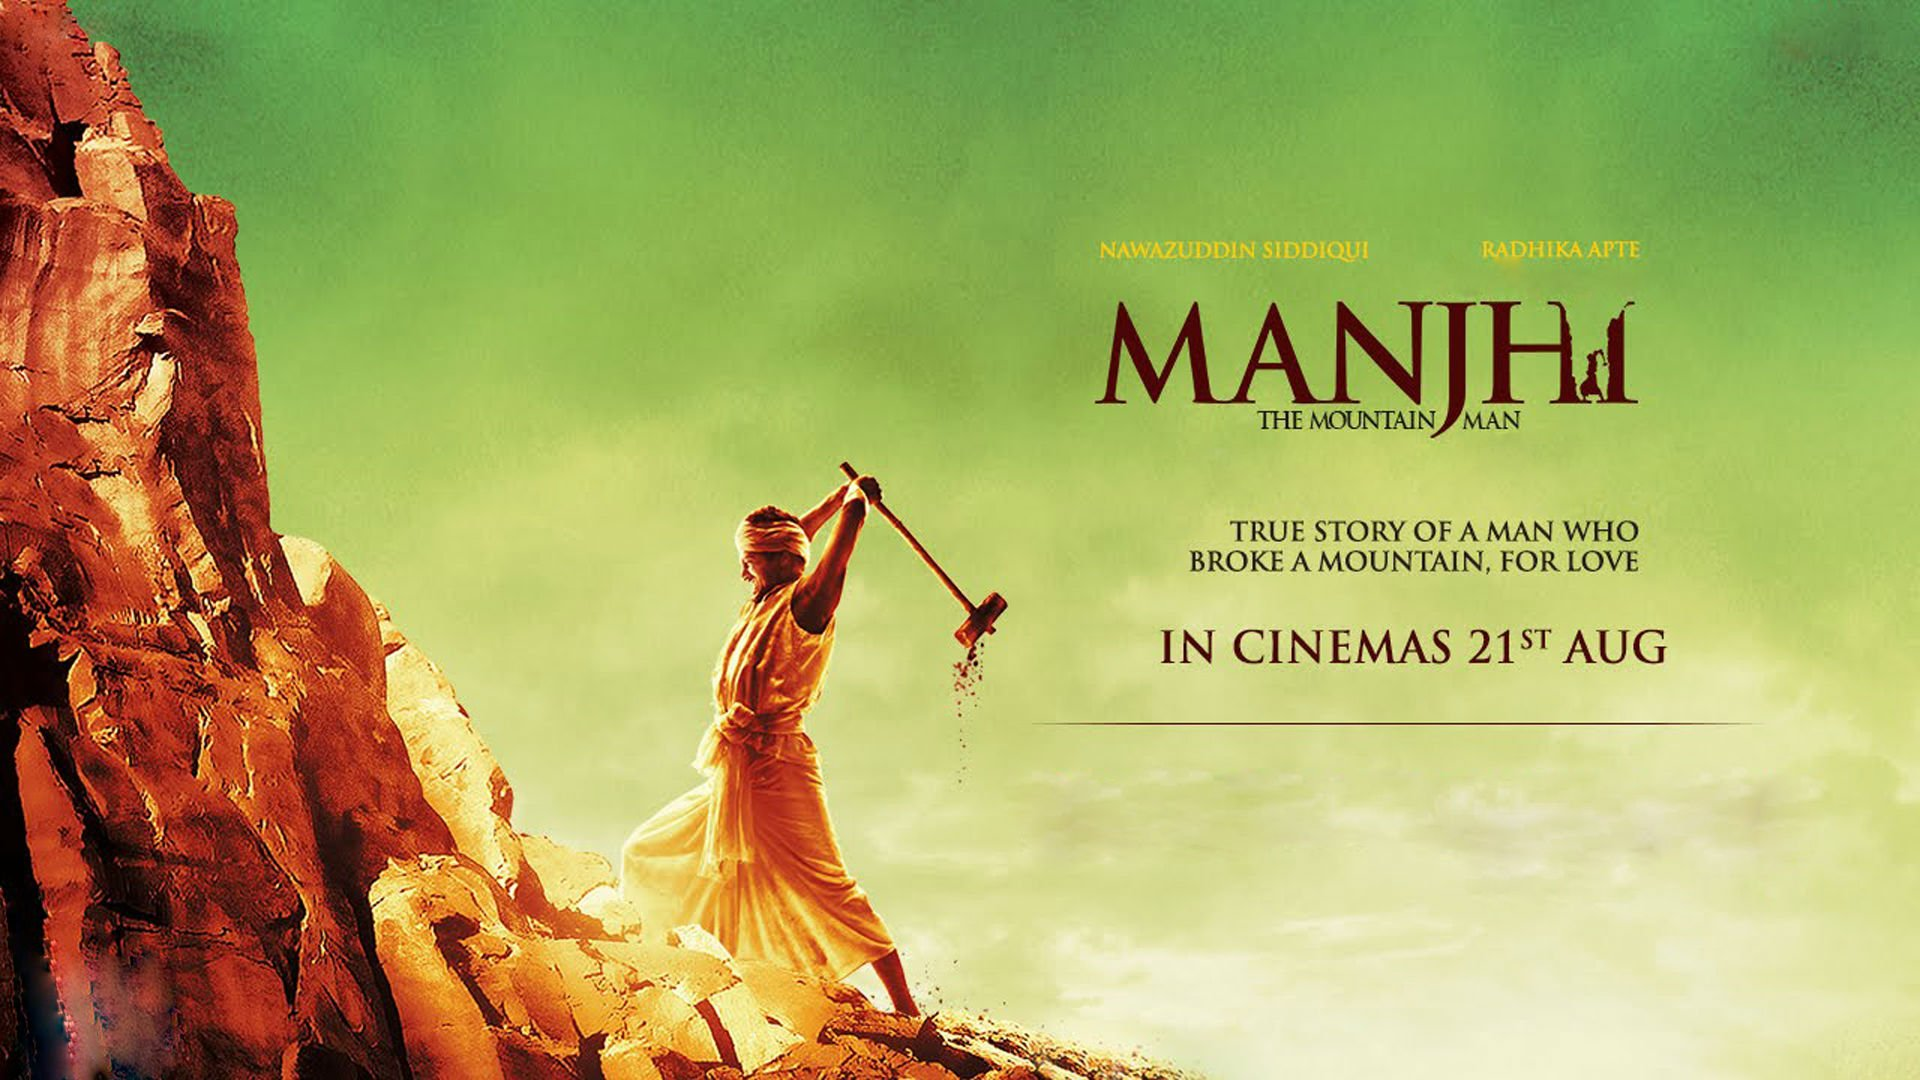 manjhi-the-mountain-man-2015-film-HD